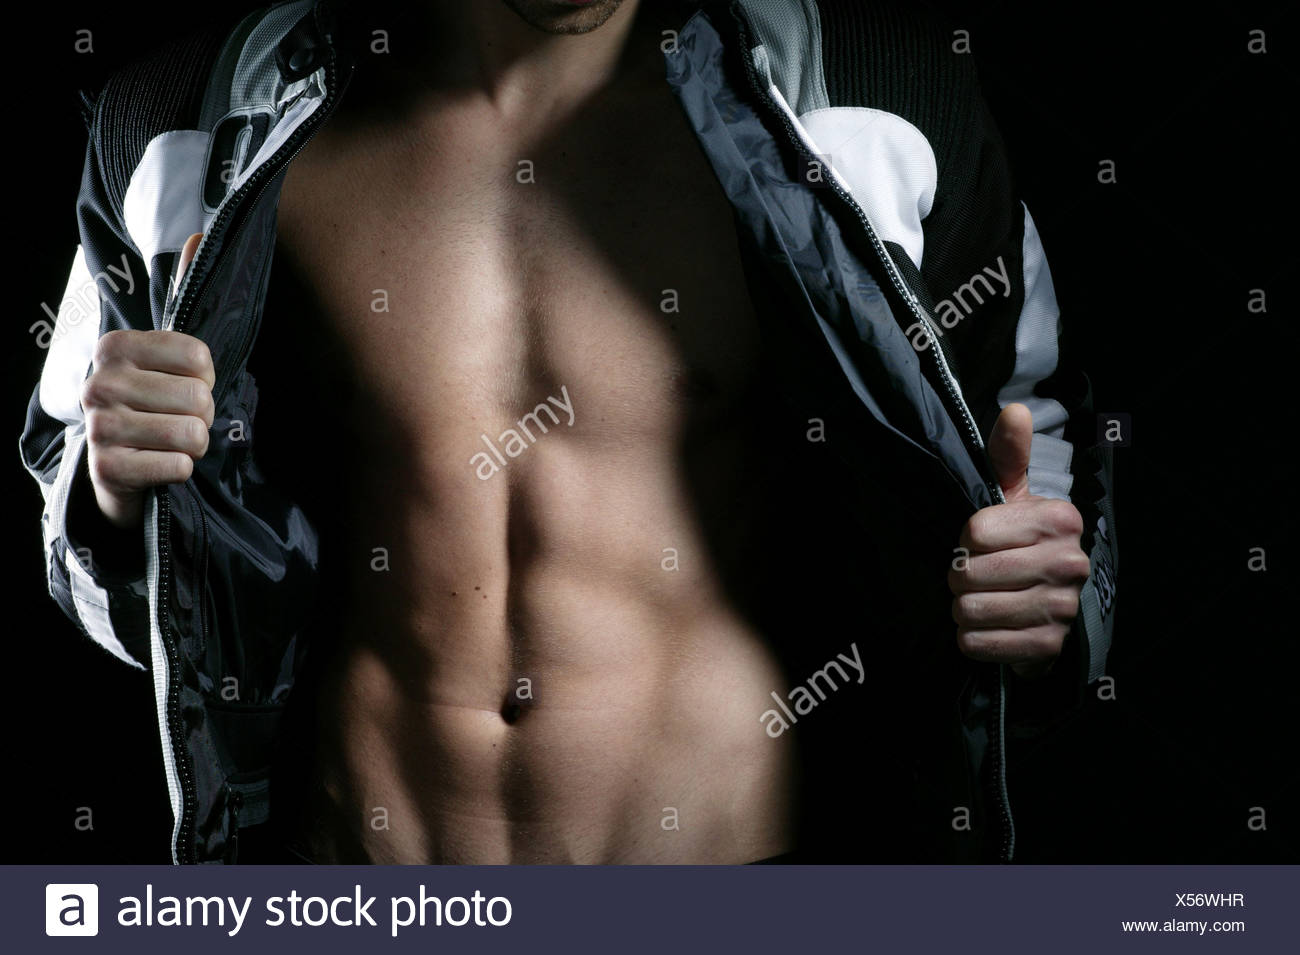 Man jacket openly upper body musculature detail people young stands motorcycle-jacket opened bodies slim muscular - Stock Image